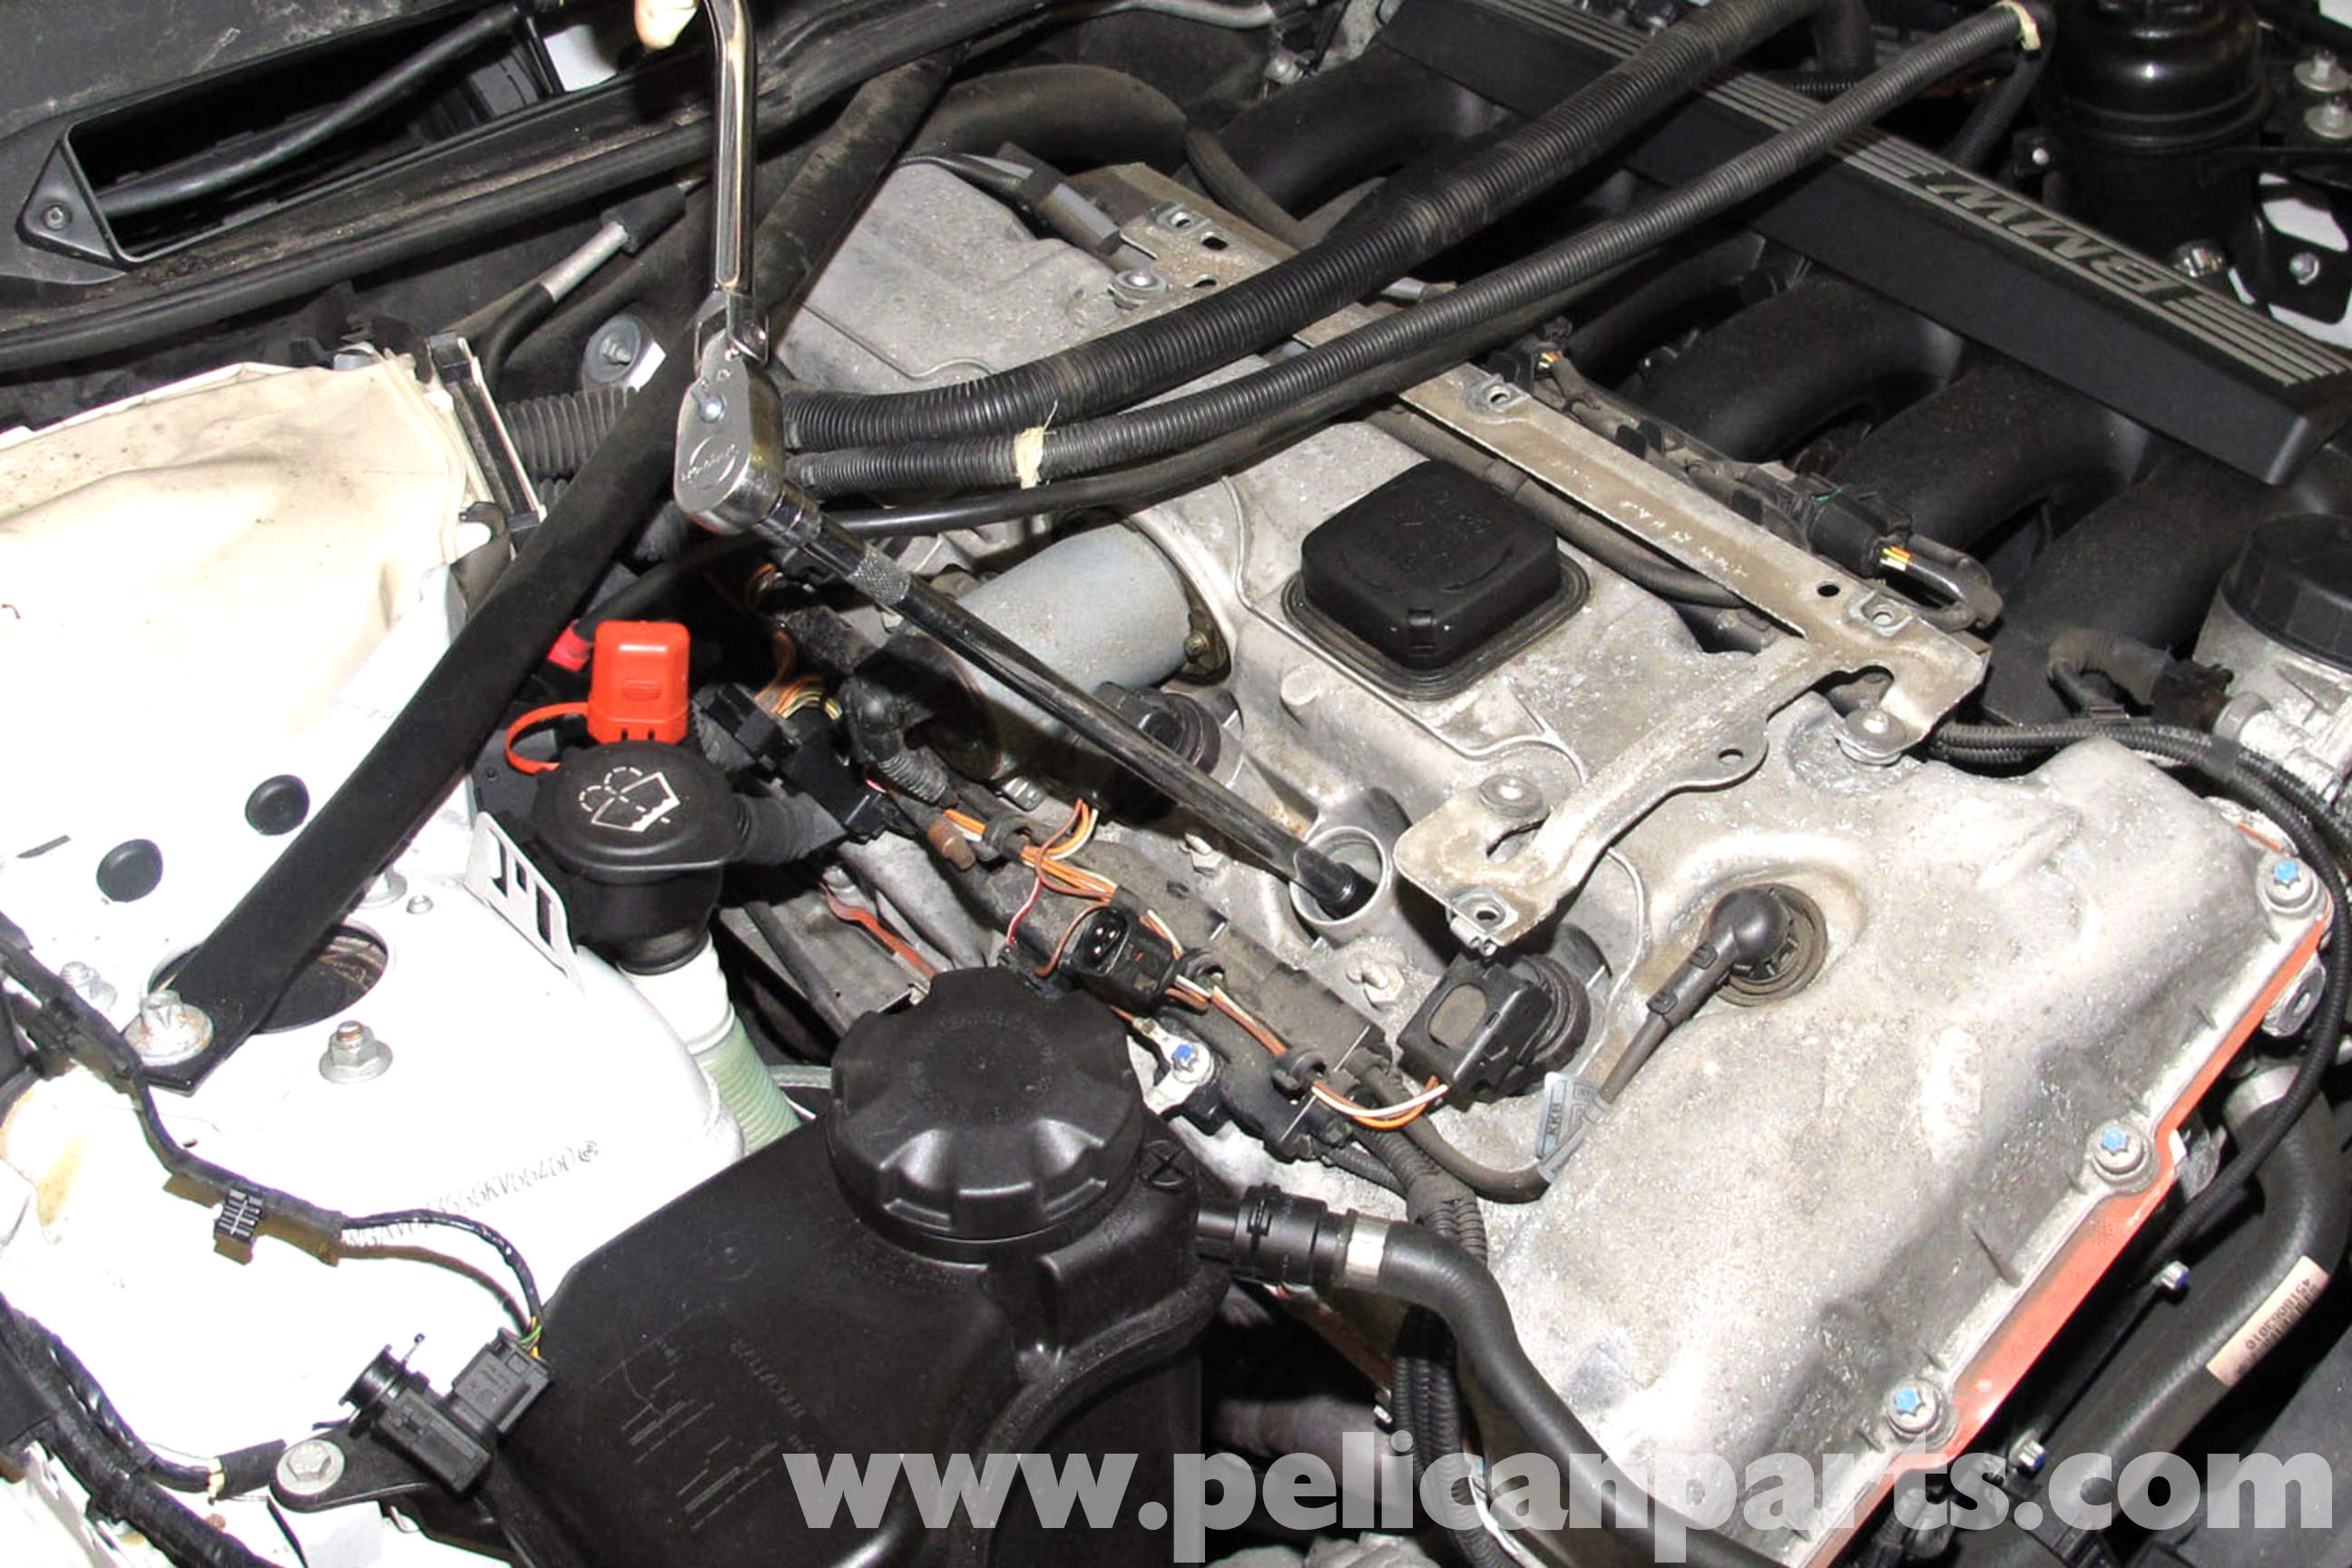 BMW E90 Spark Plug and Coil Replacement | E91, E92, E93 | Pelican